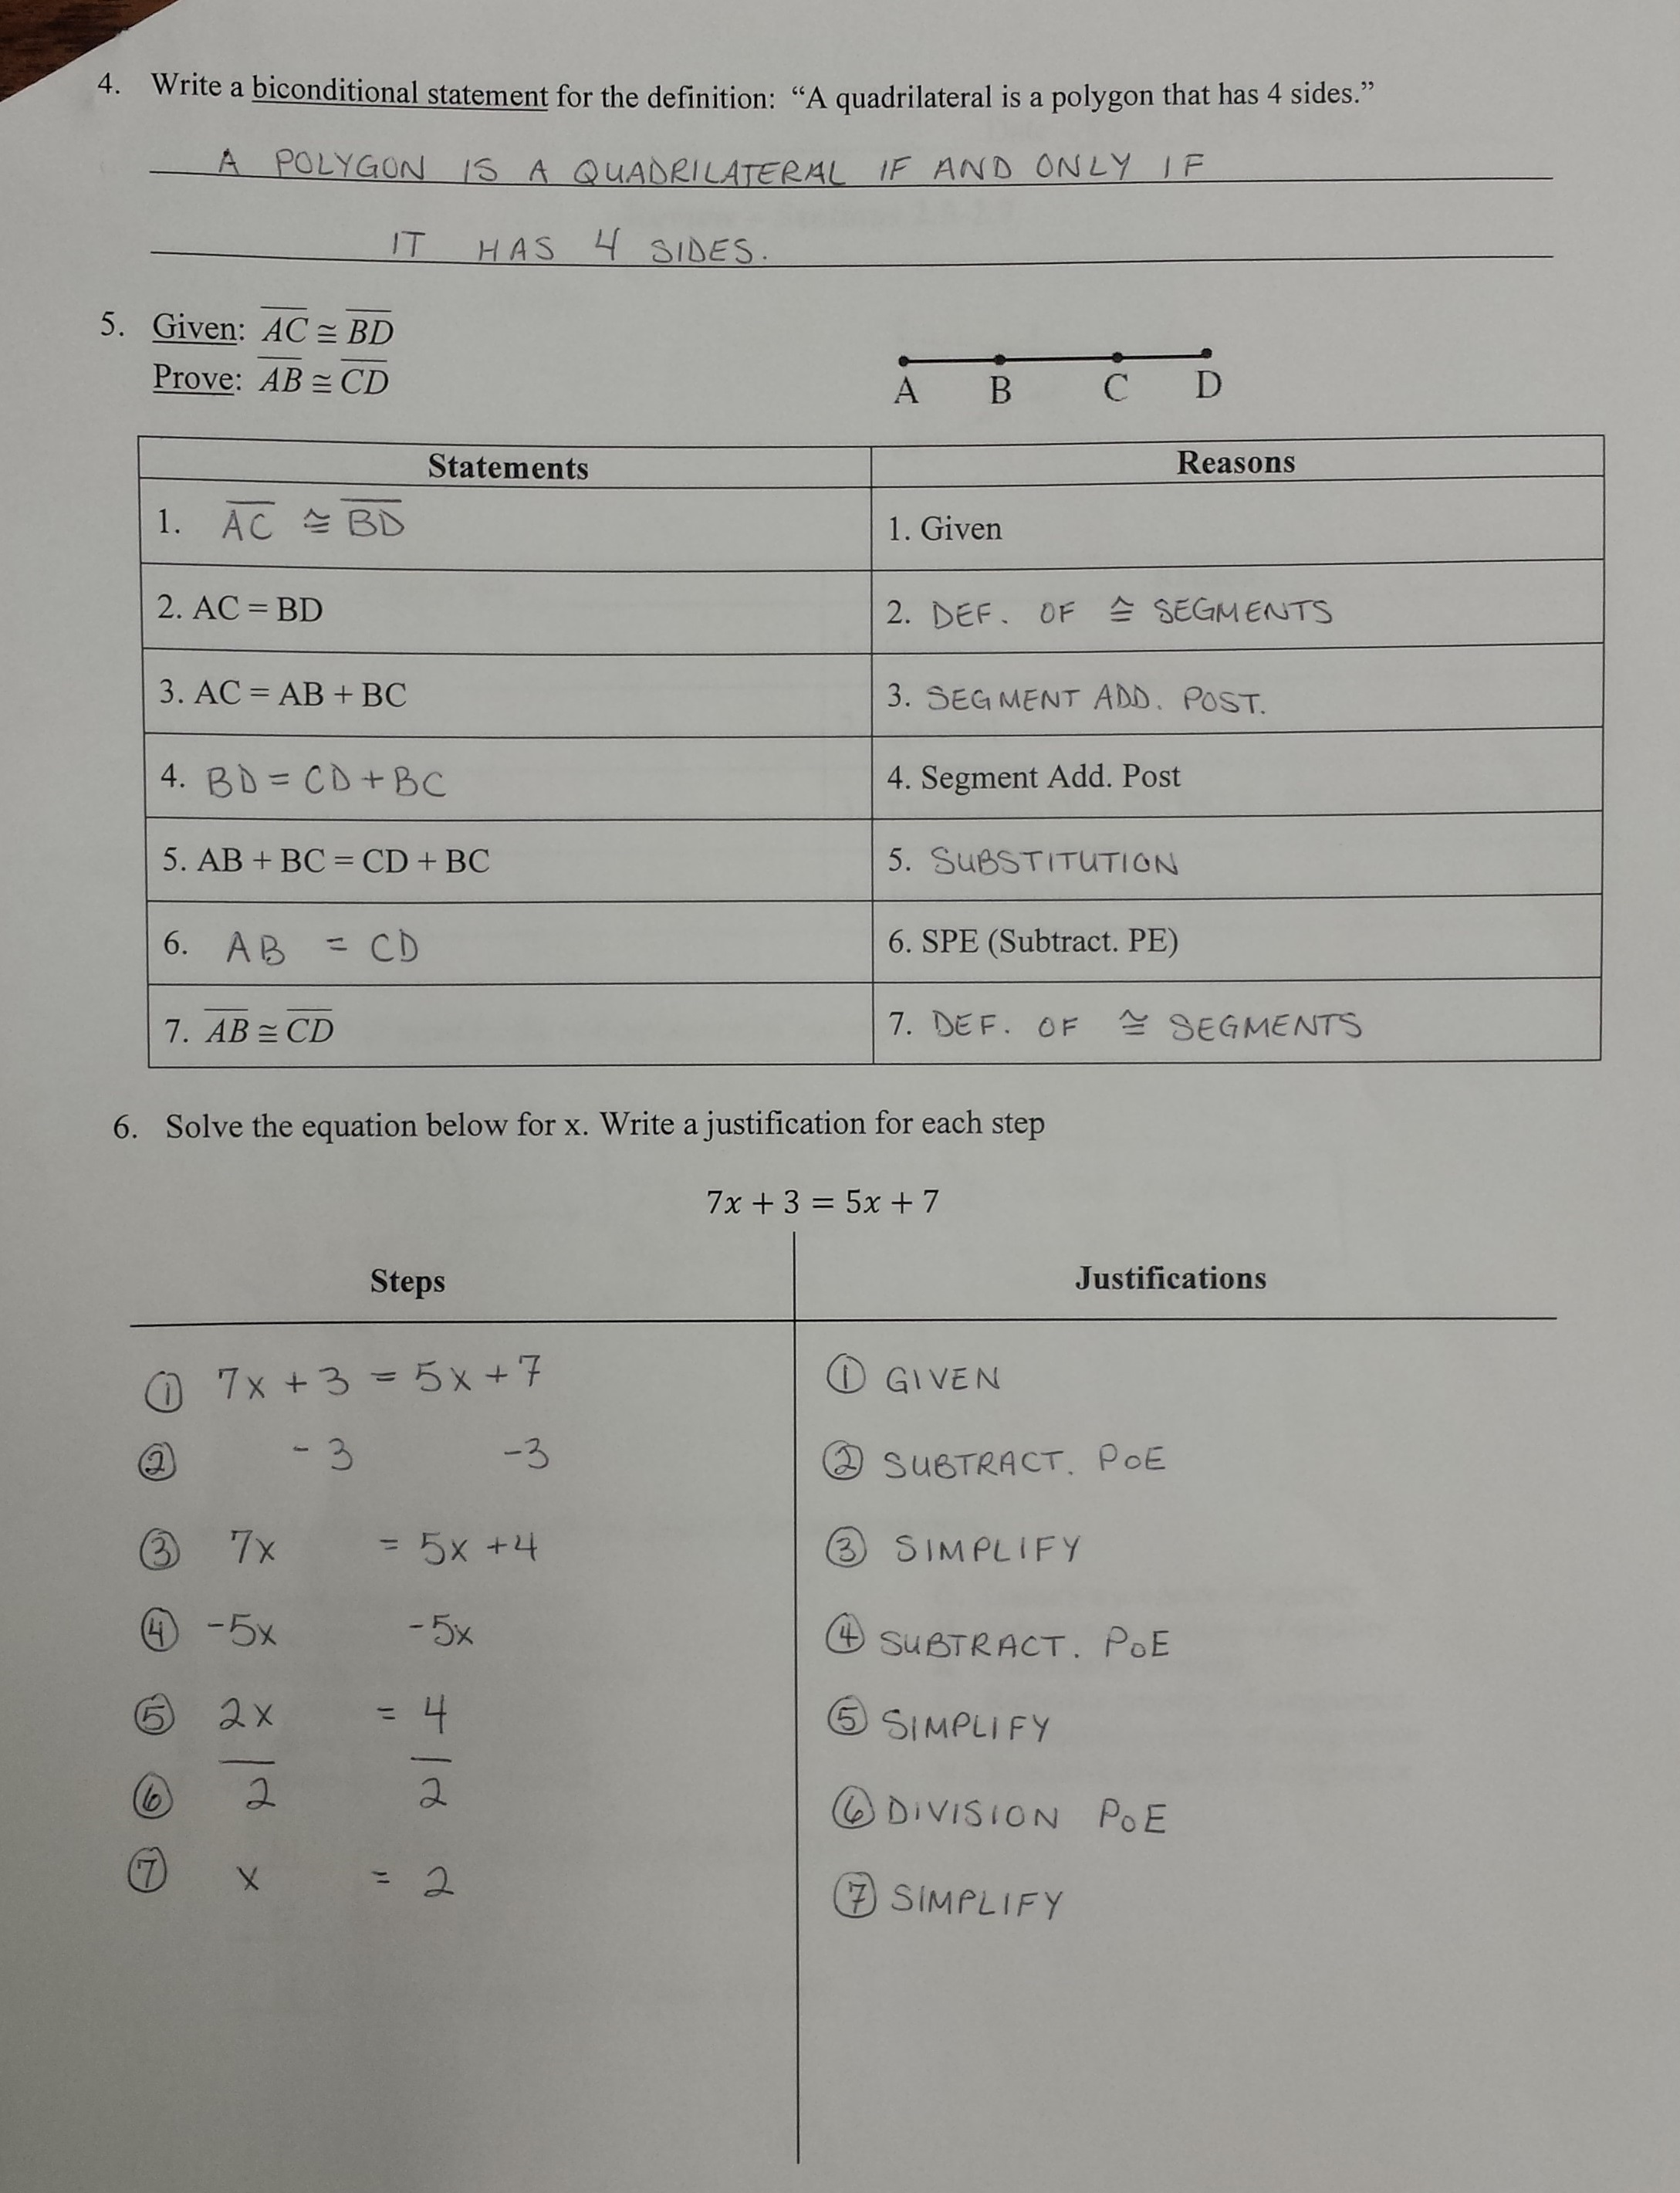 Algebraic proof worksheet answer key